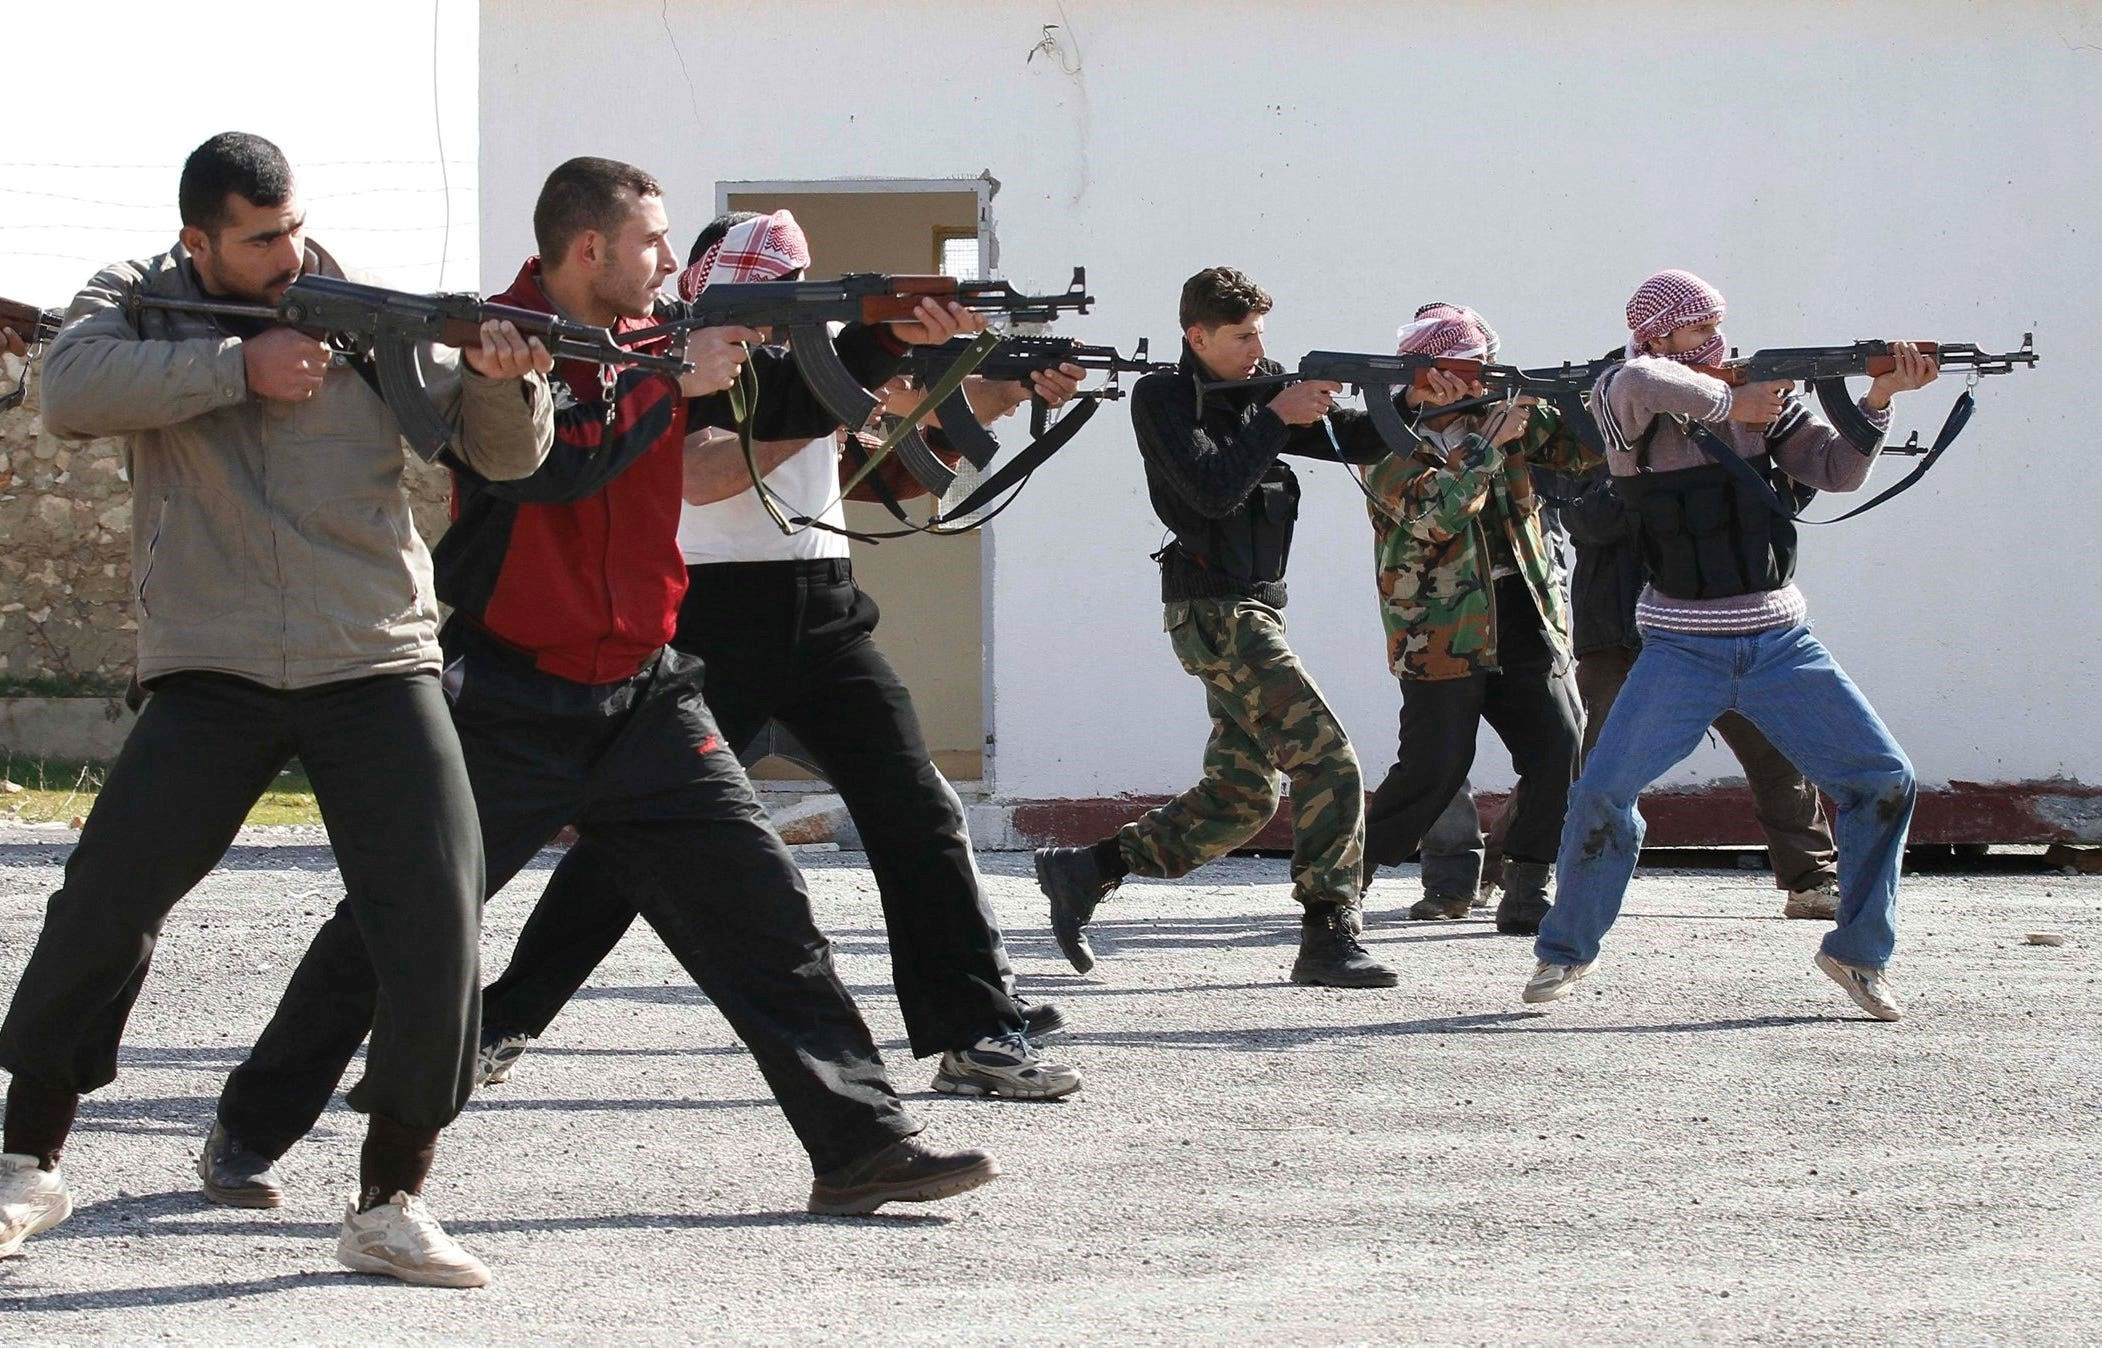 In Video: US Trained Militants, 'ISIS' Members